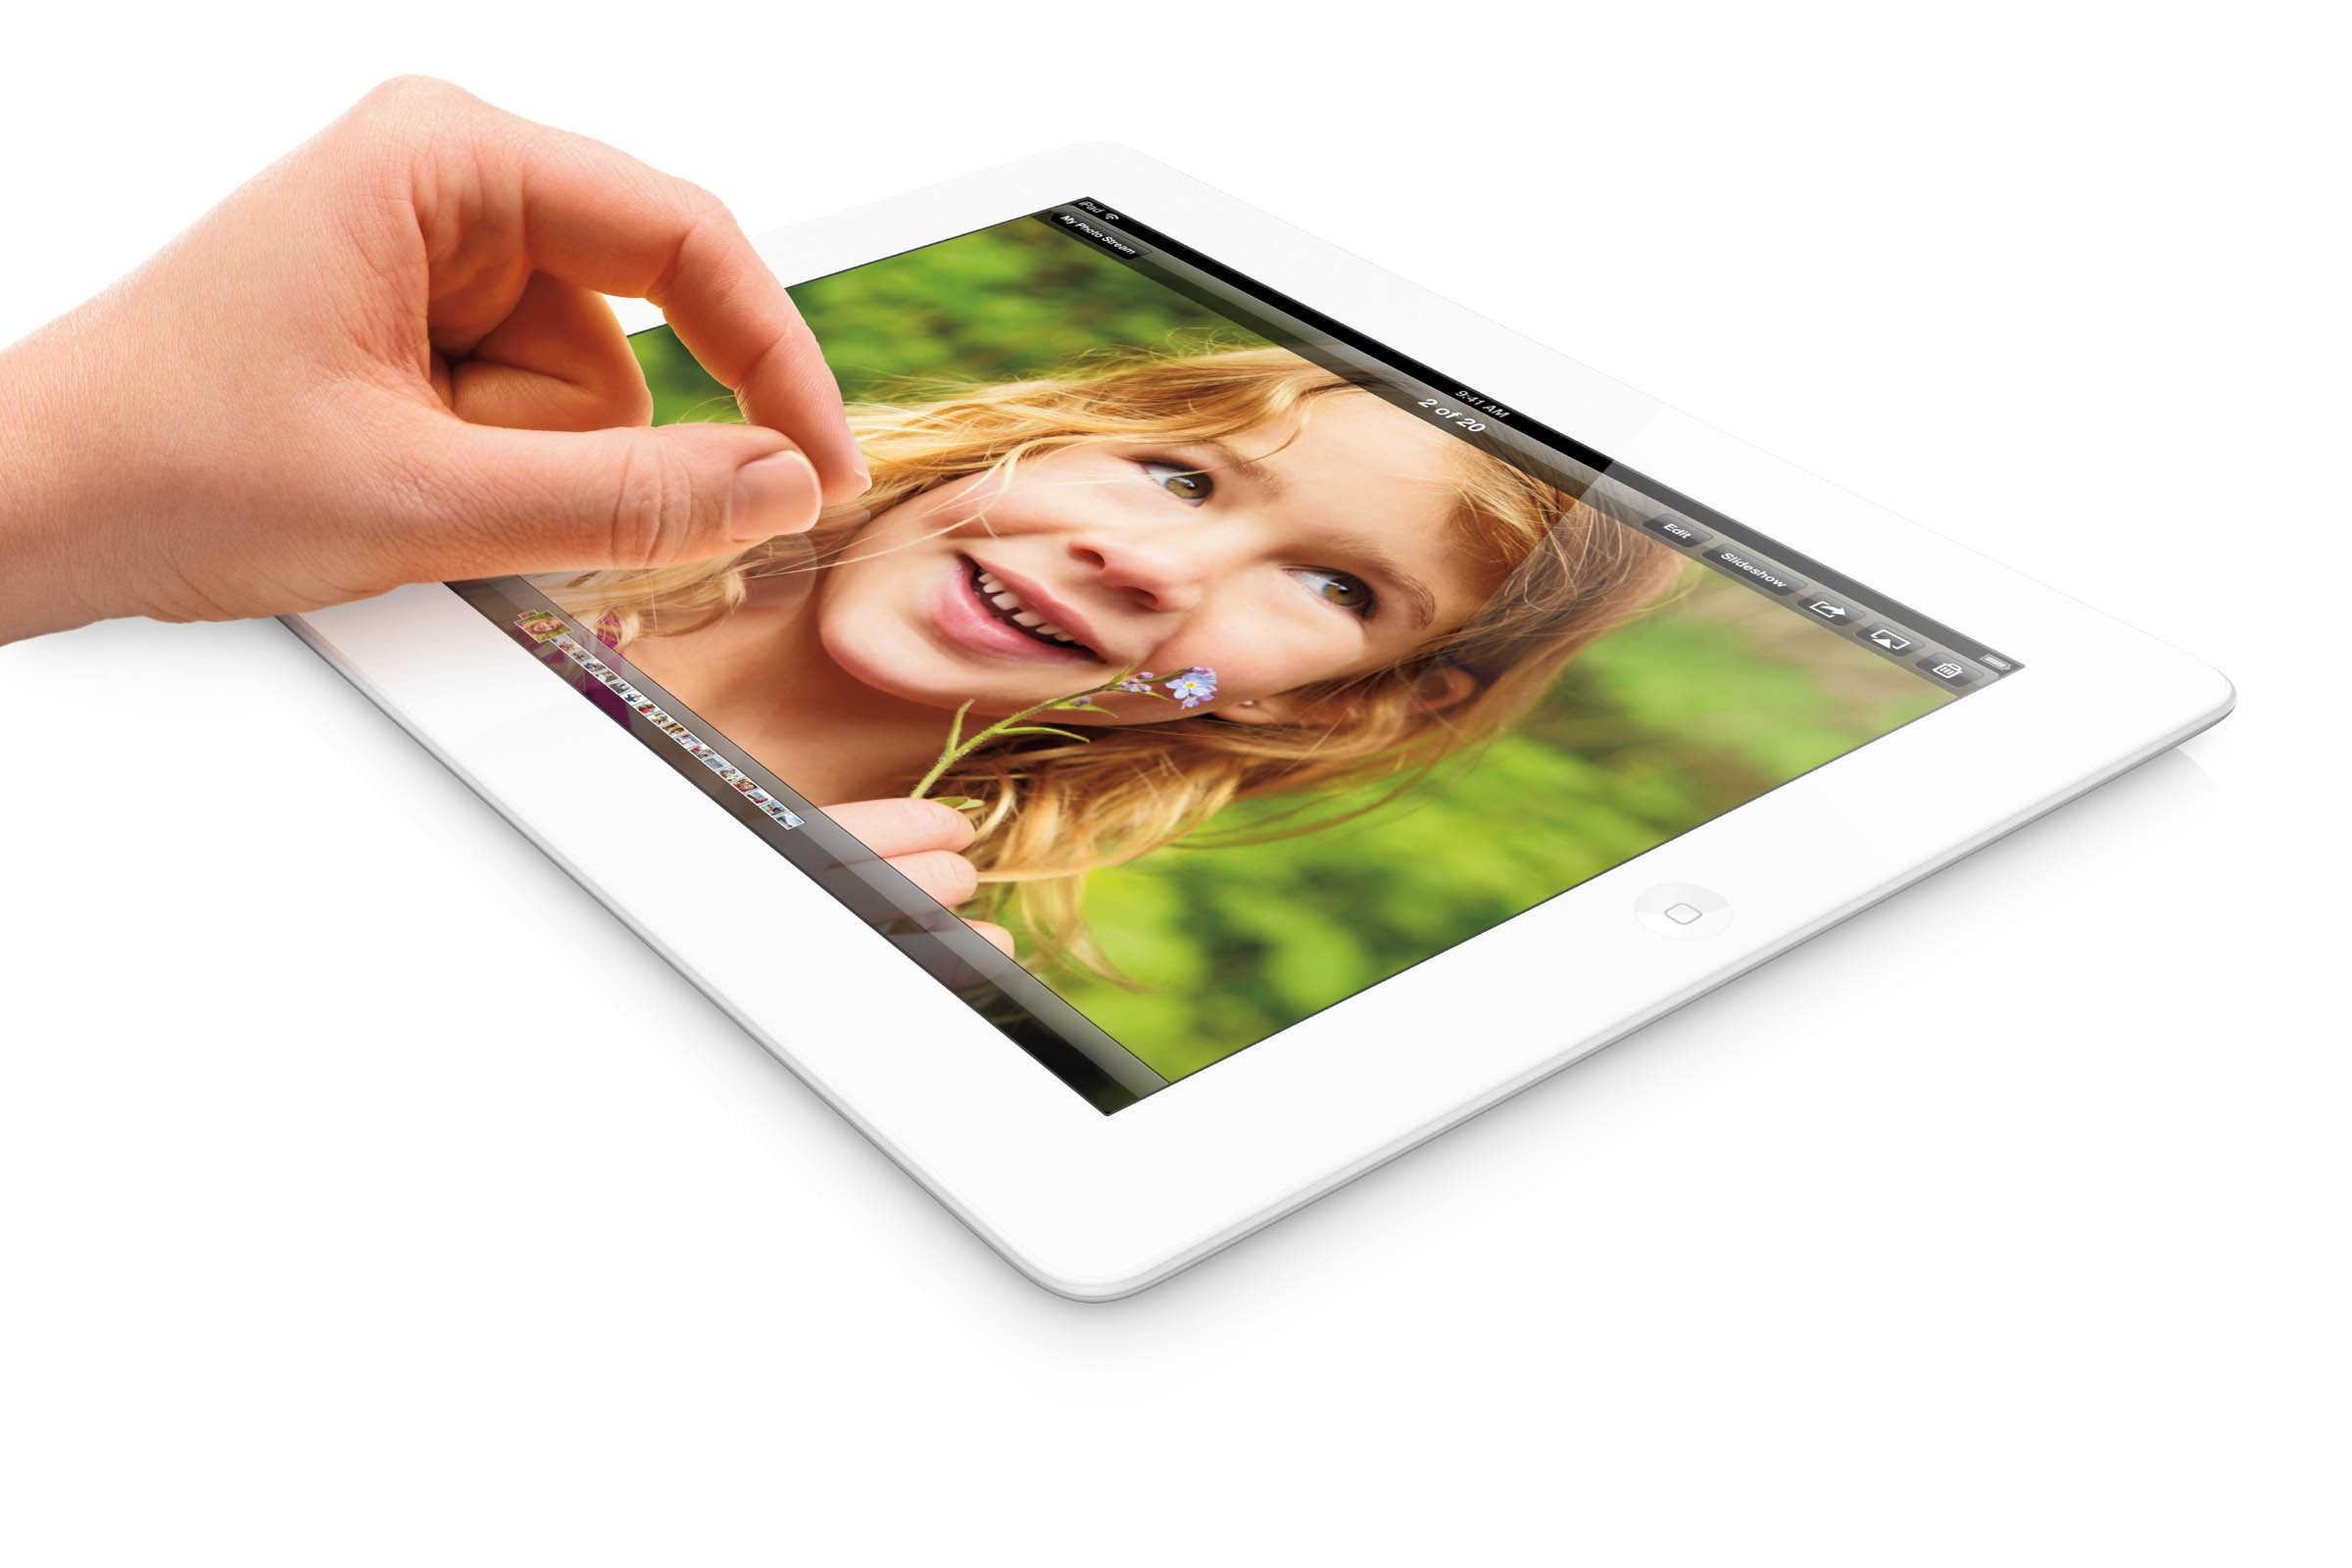 Apple launched the fourth generation iPad in October 2012. <br> Image source: Apple